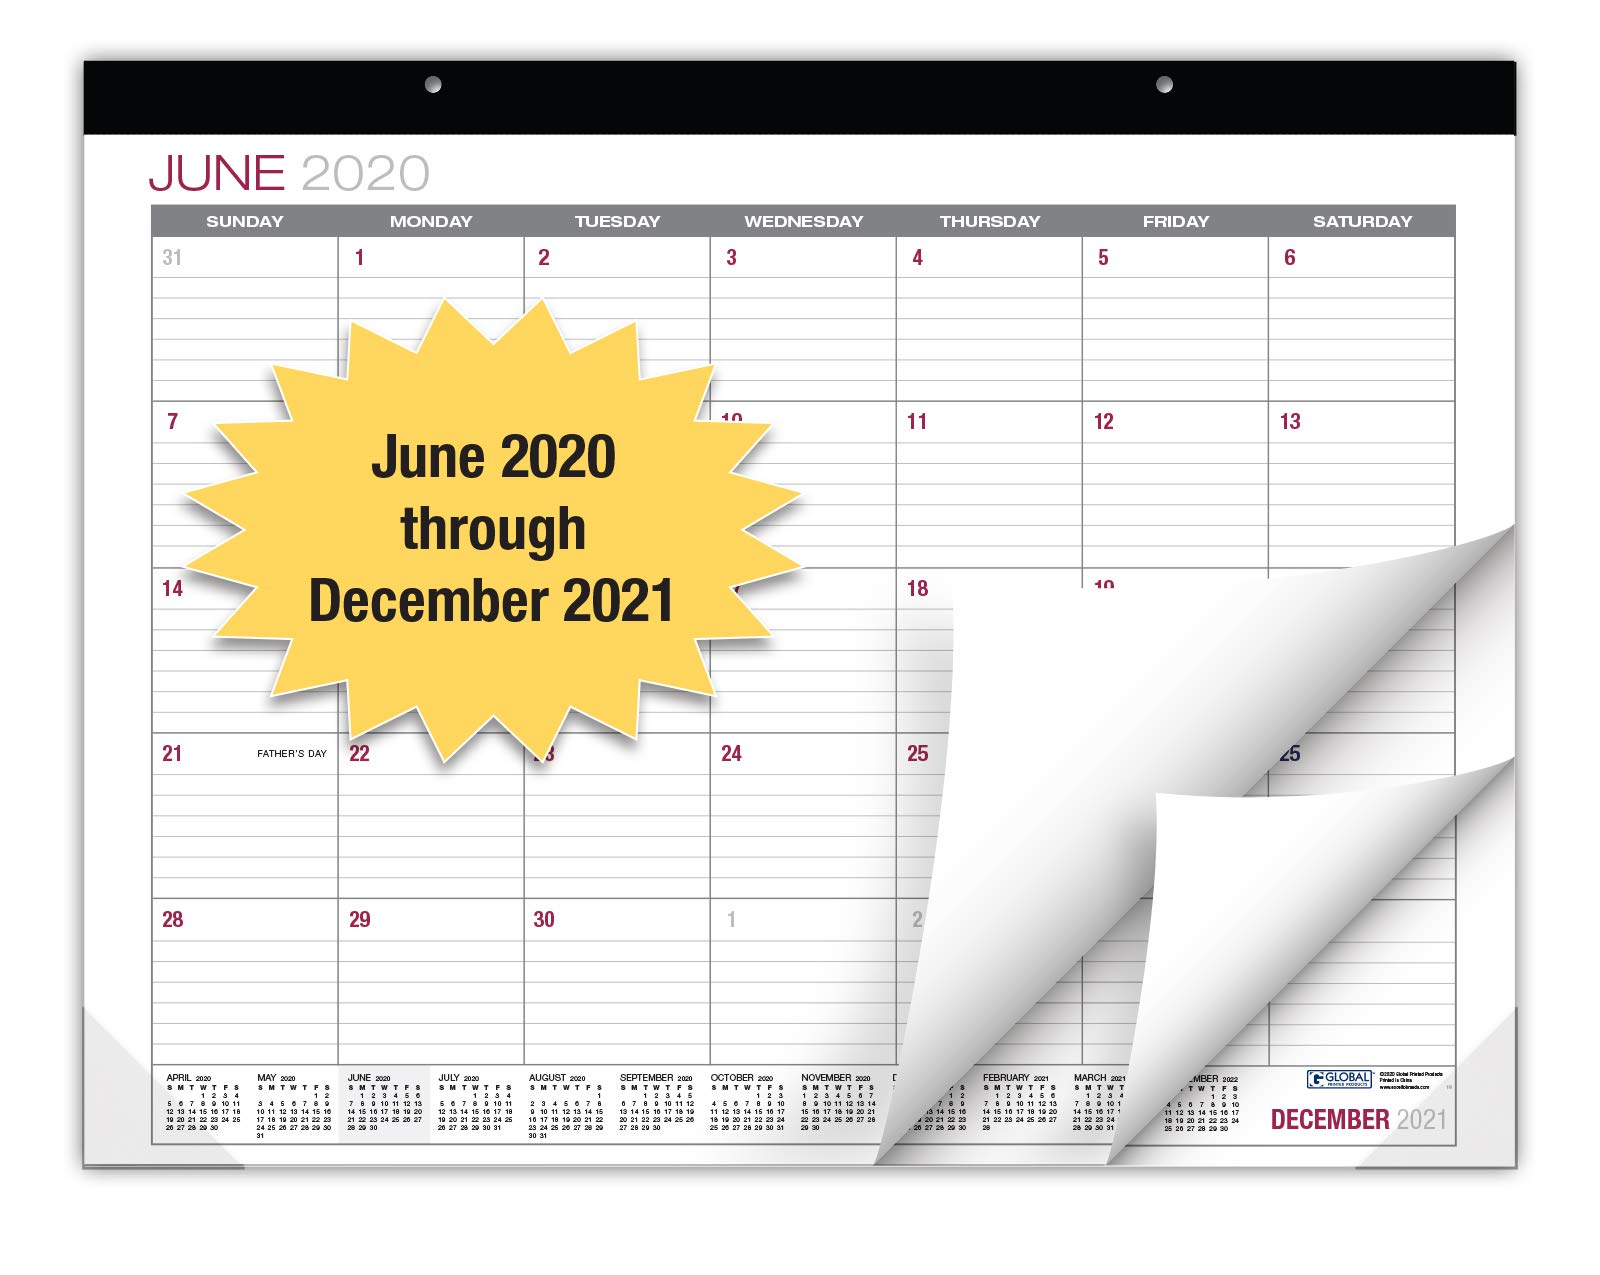 """Professional Desk Calendar 2020-2021: Large Monthly Pages - 22""""x17"""" - Runs from June 2020 Through December 2021 - Desk/Wall Calendar can be Used Throughout 2020-2021"""